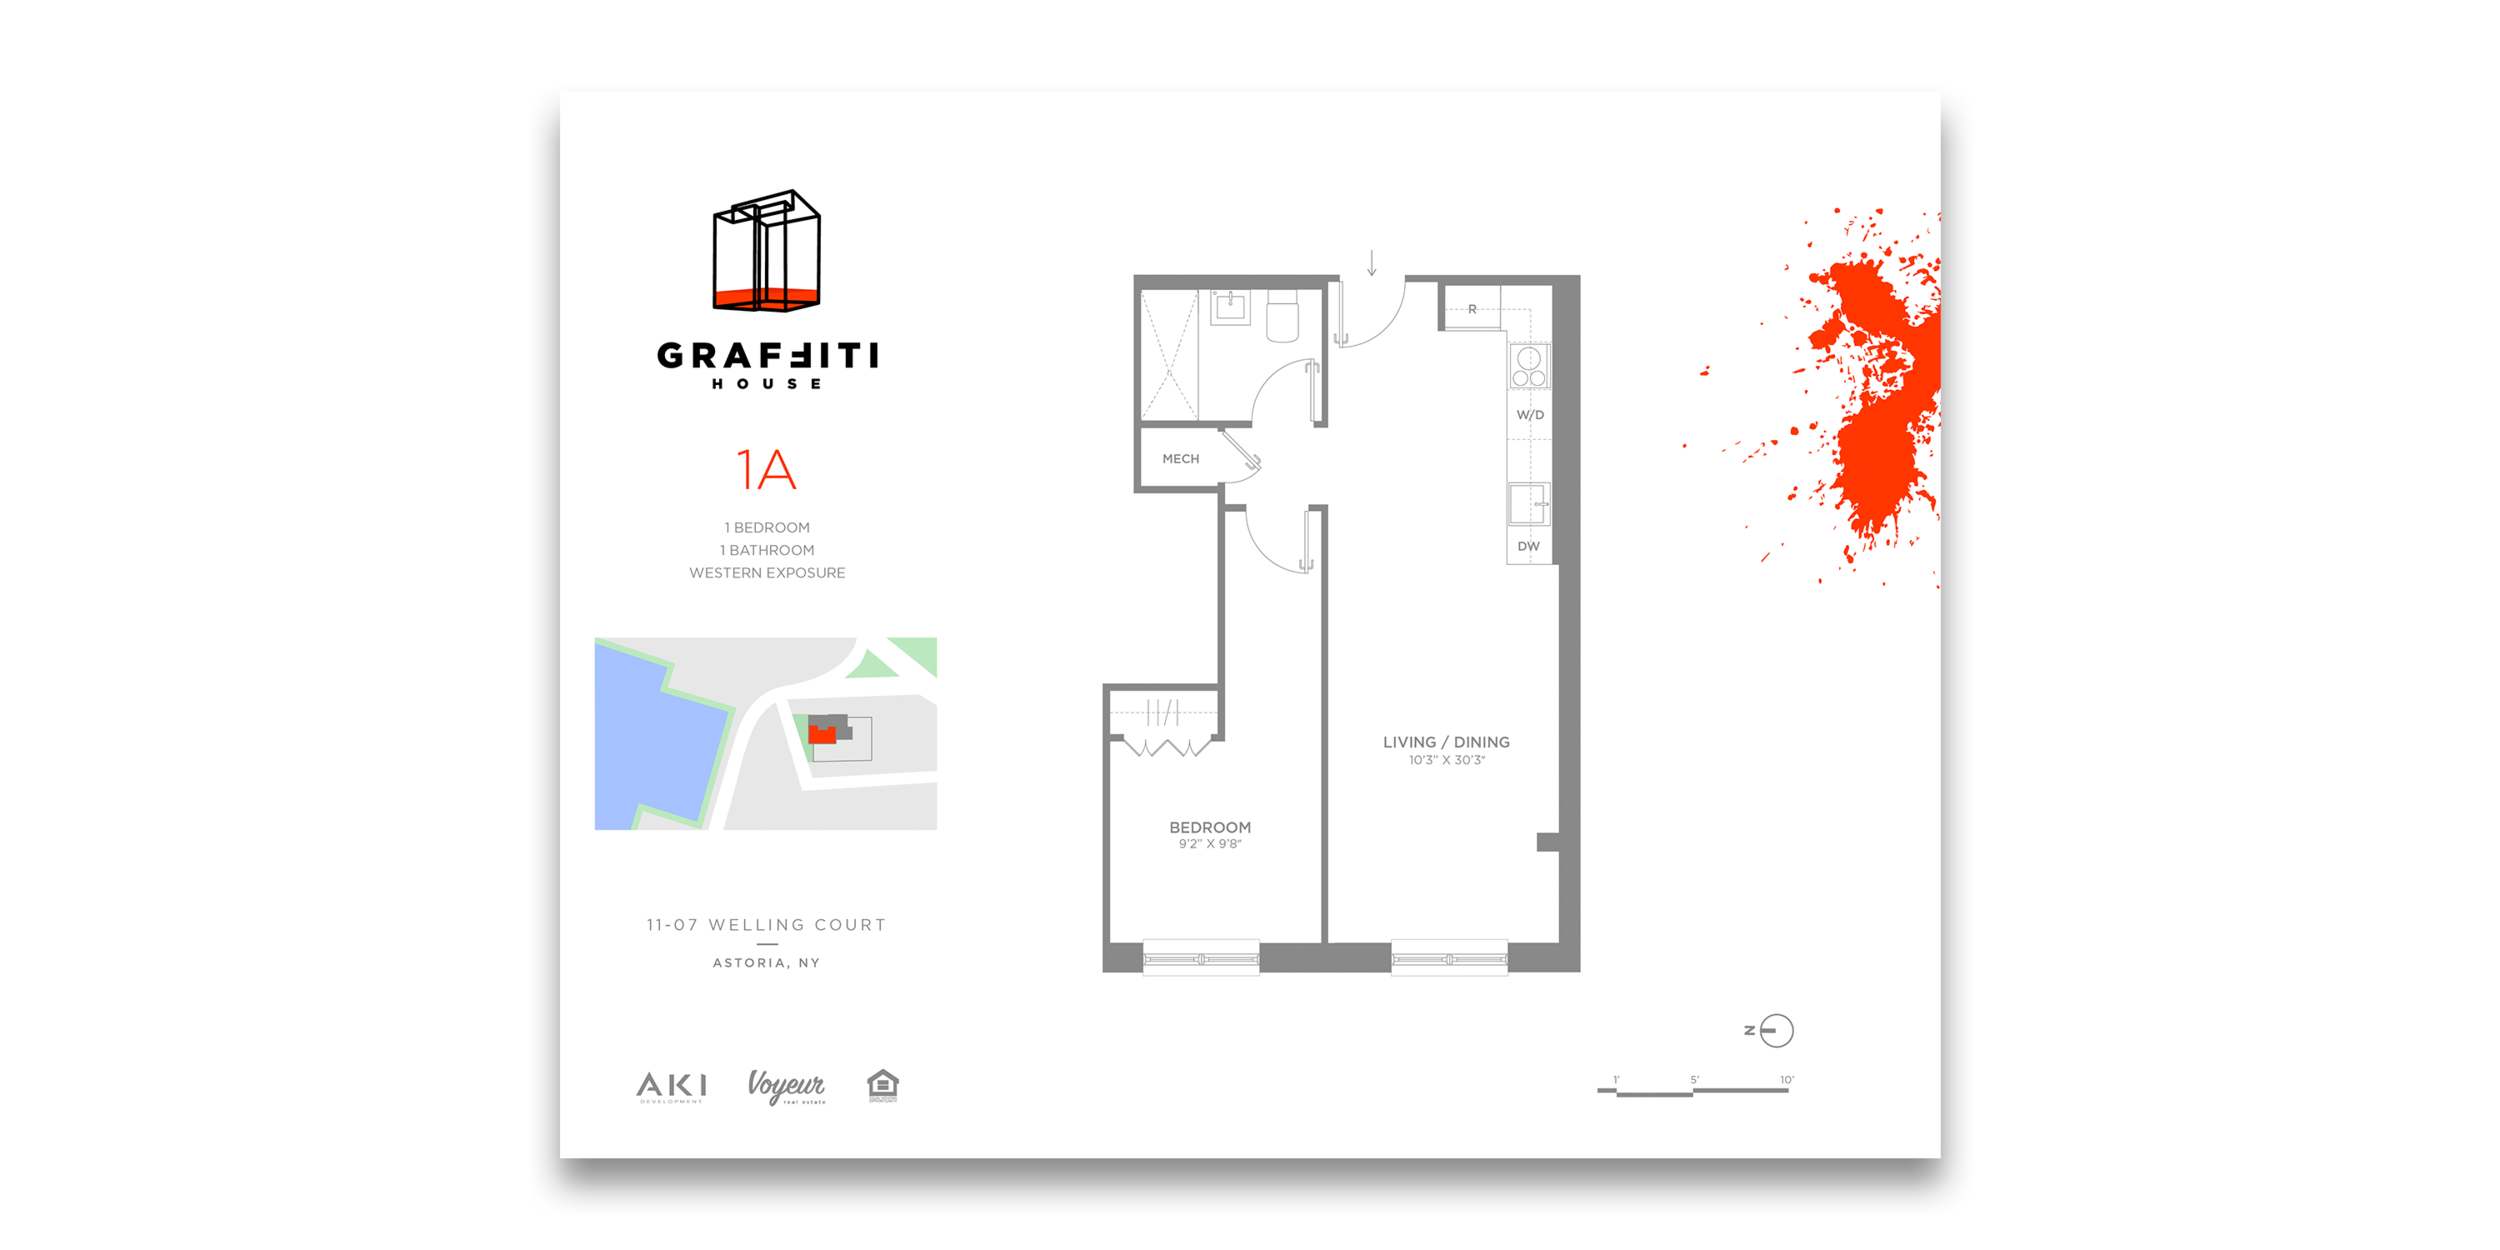 WBCG_GraffitiHouse_FloorPlans_01.png